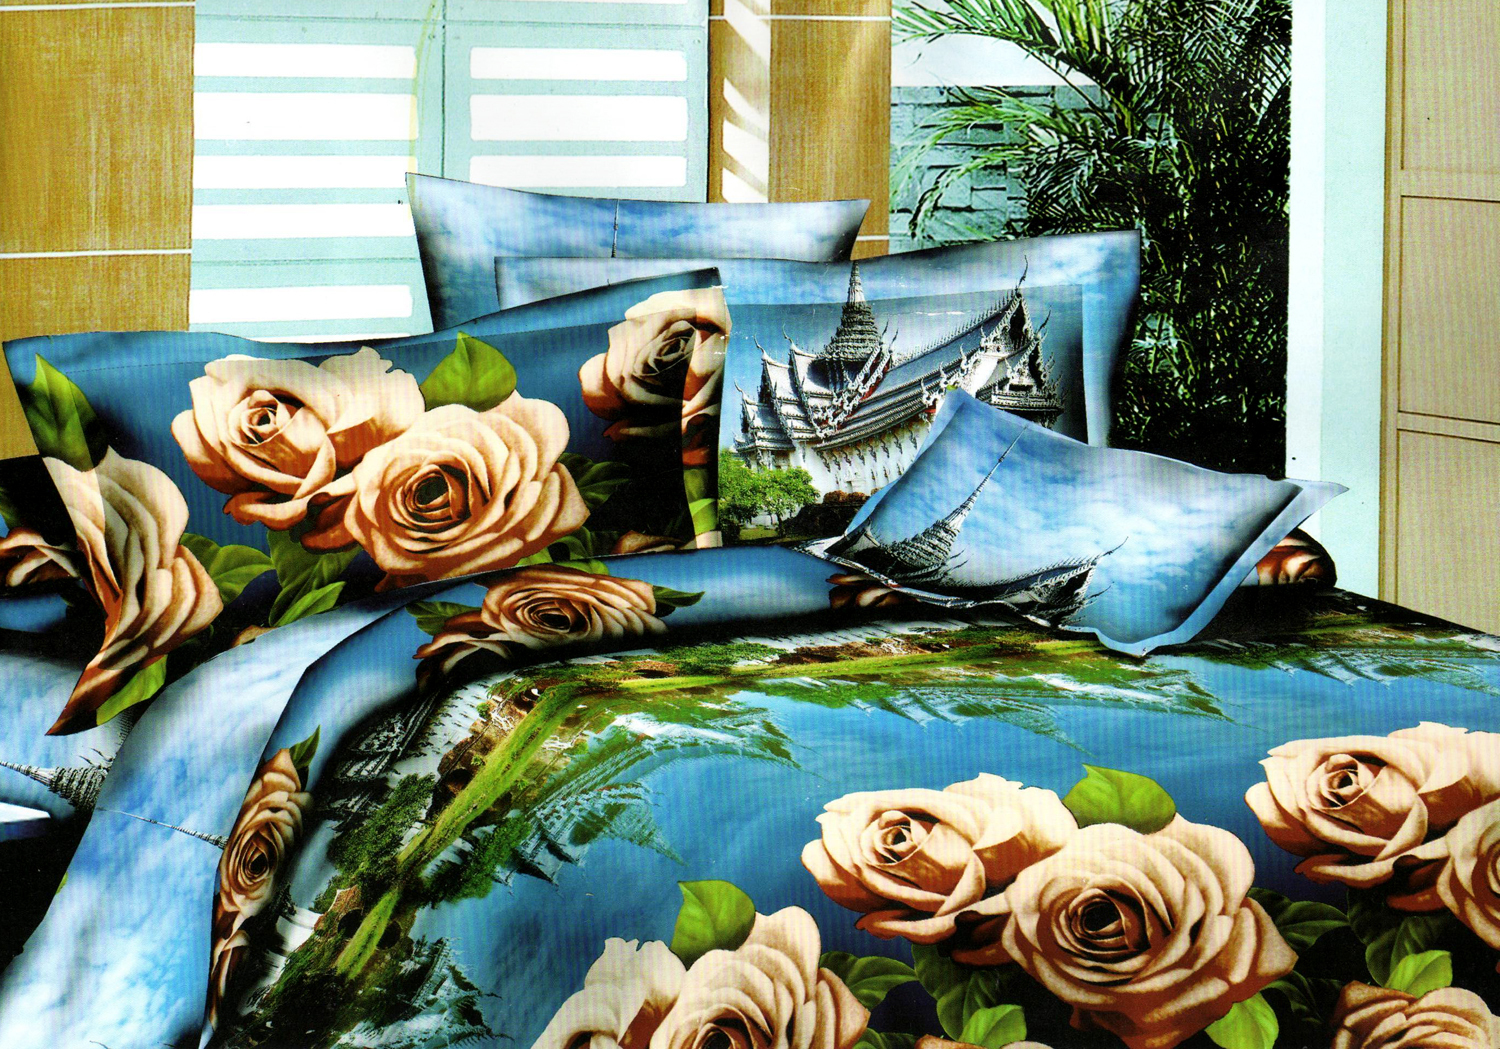 Buy Lecce Double Bed sheet at Rs.299